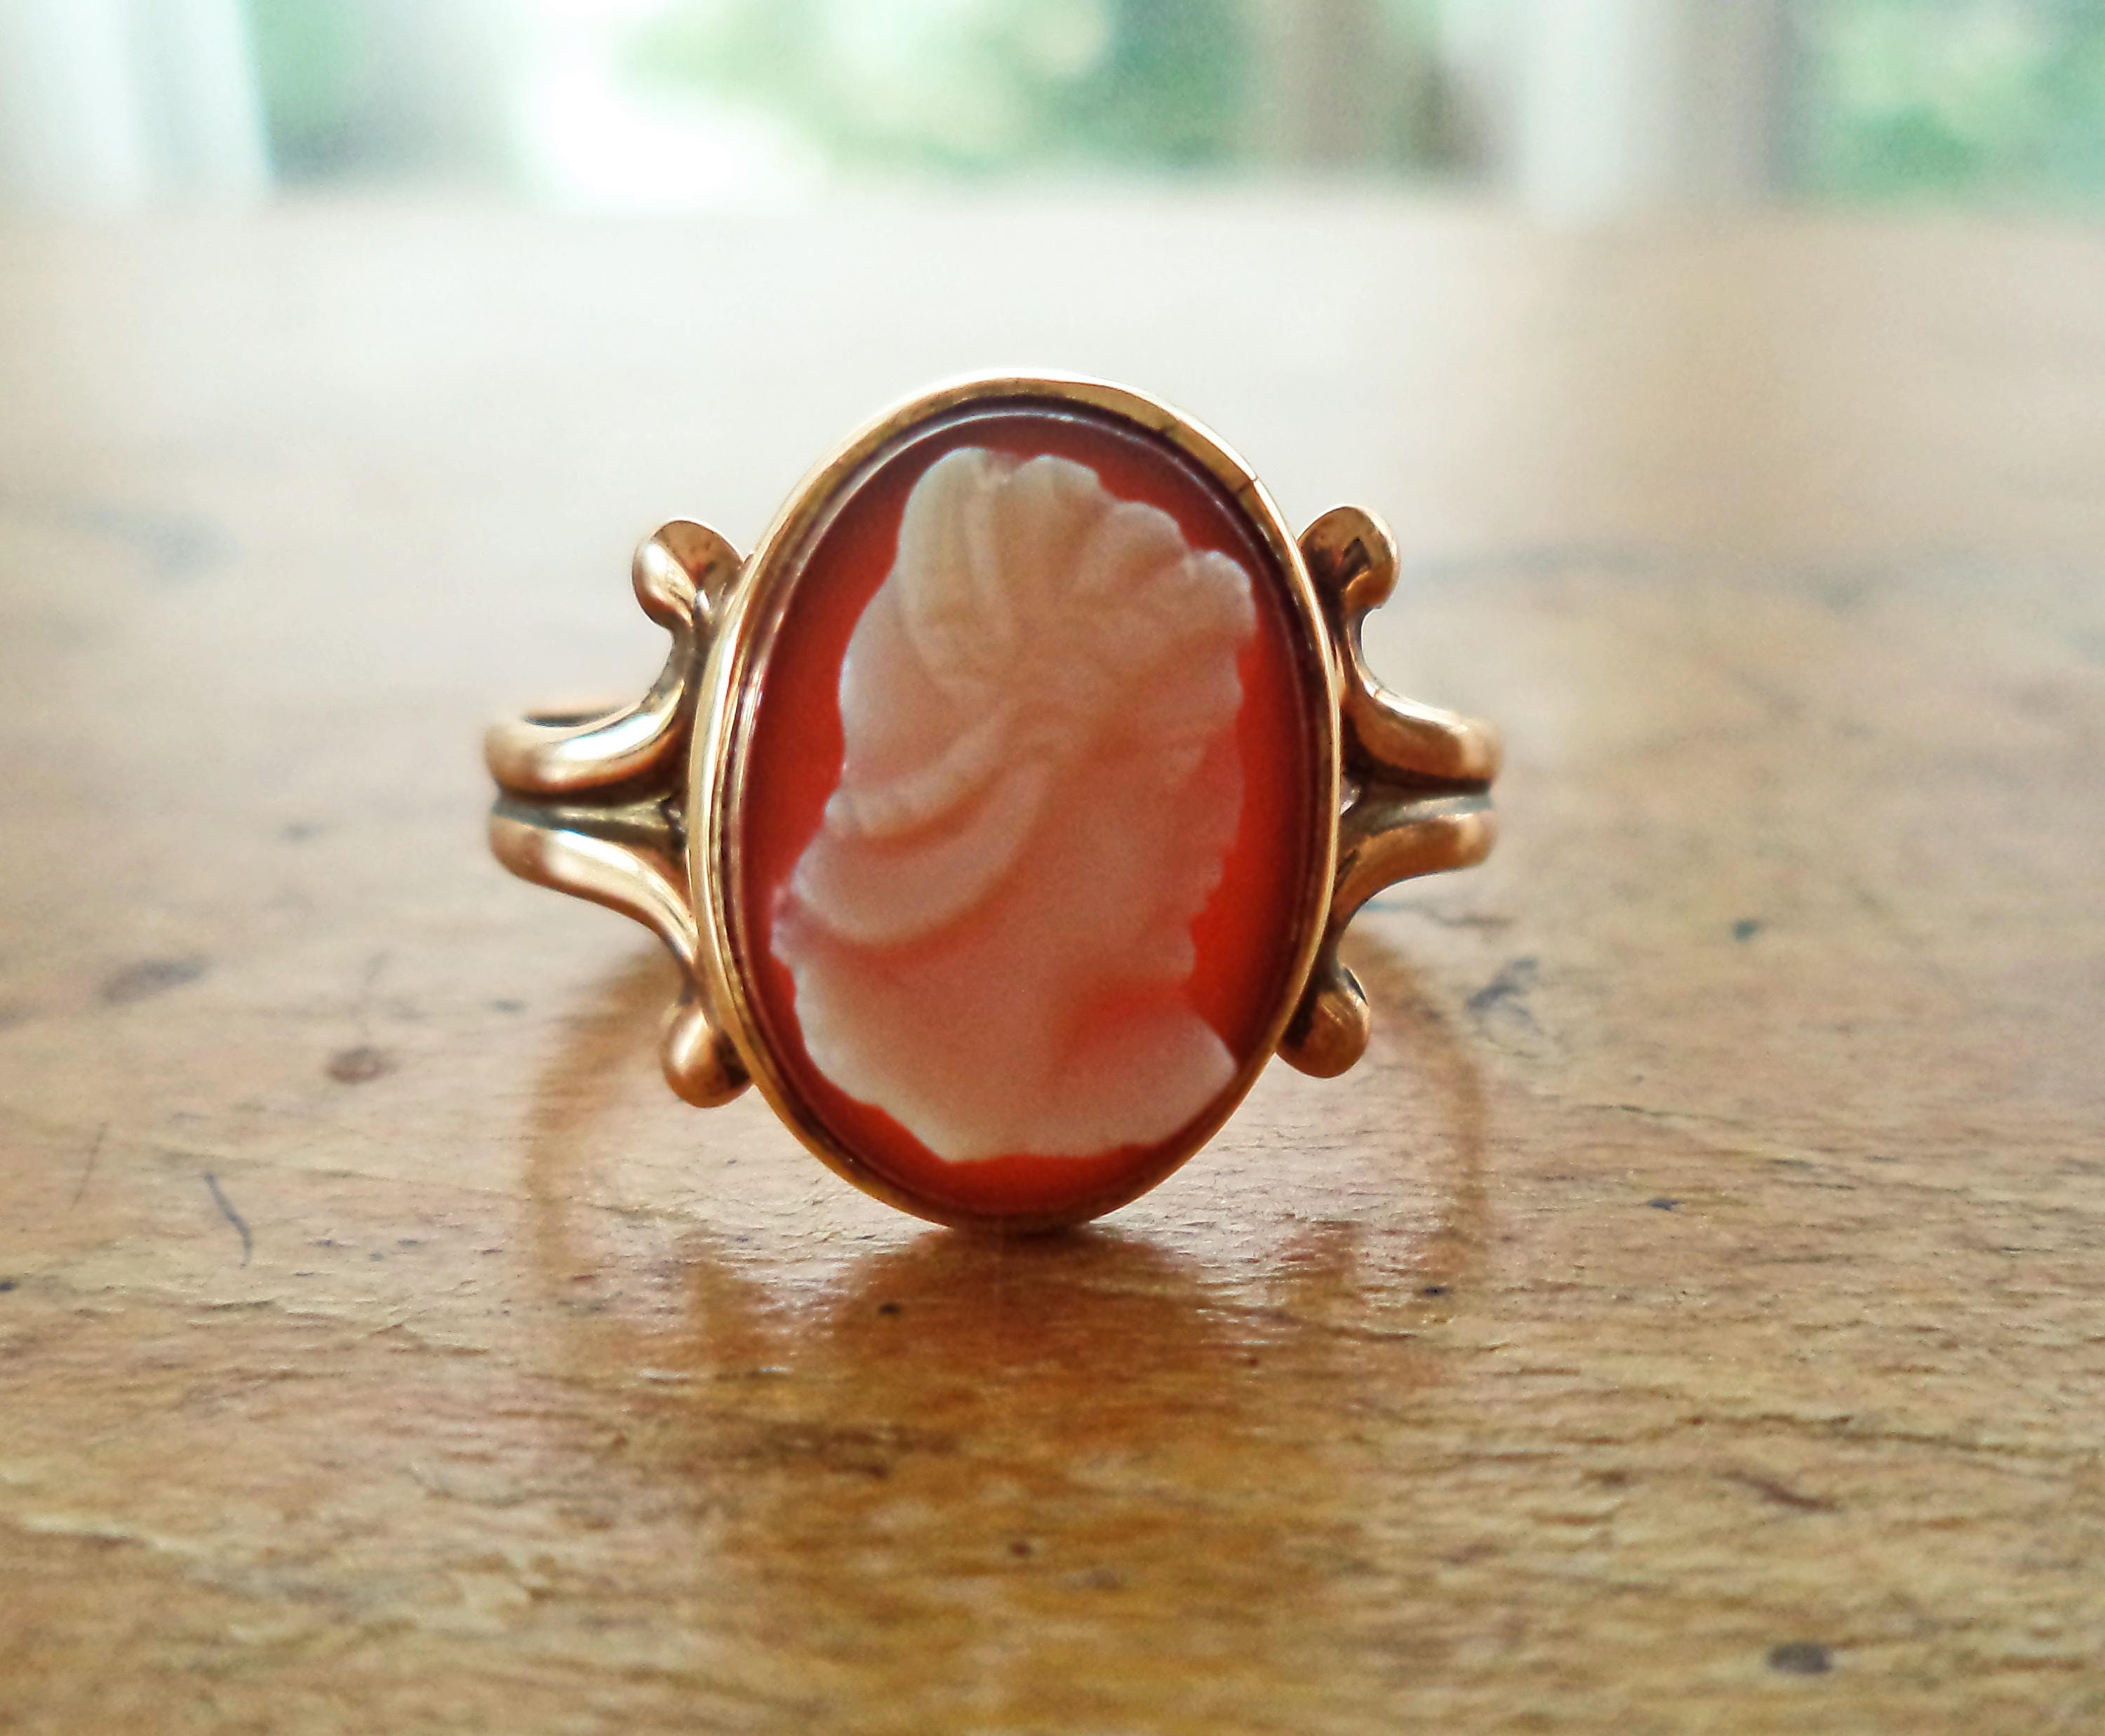 Antique 10K Rose Gold Cameo Ring Edwardian Jewelry